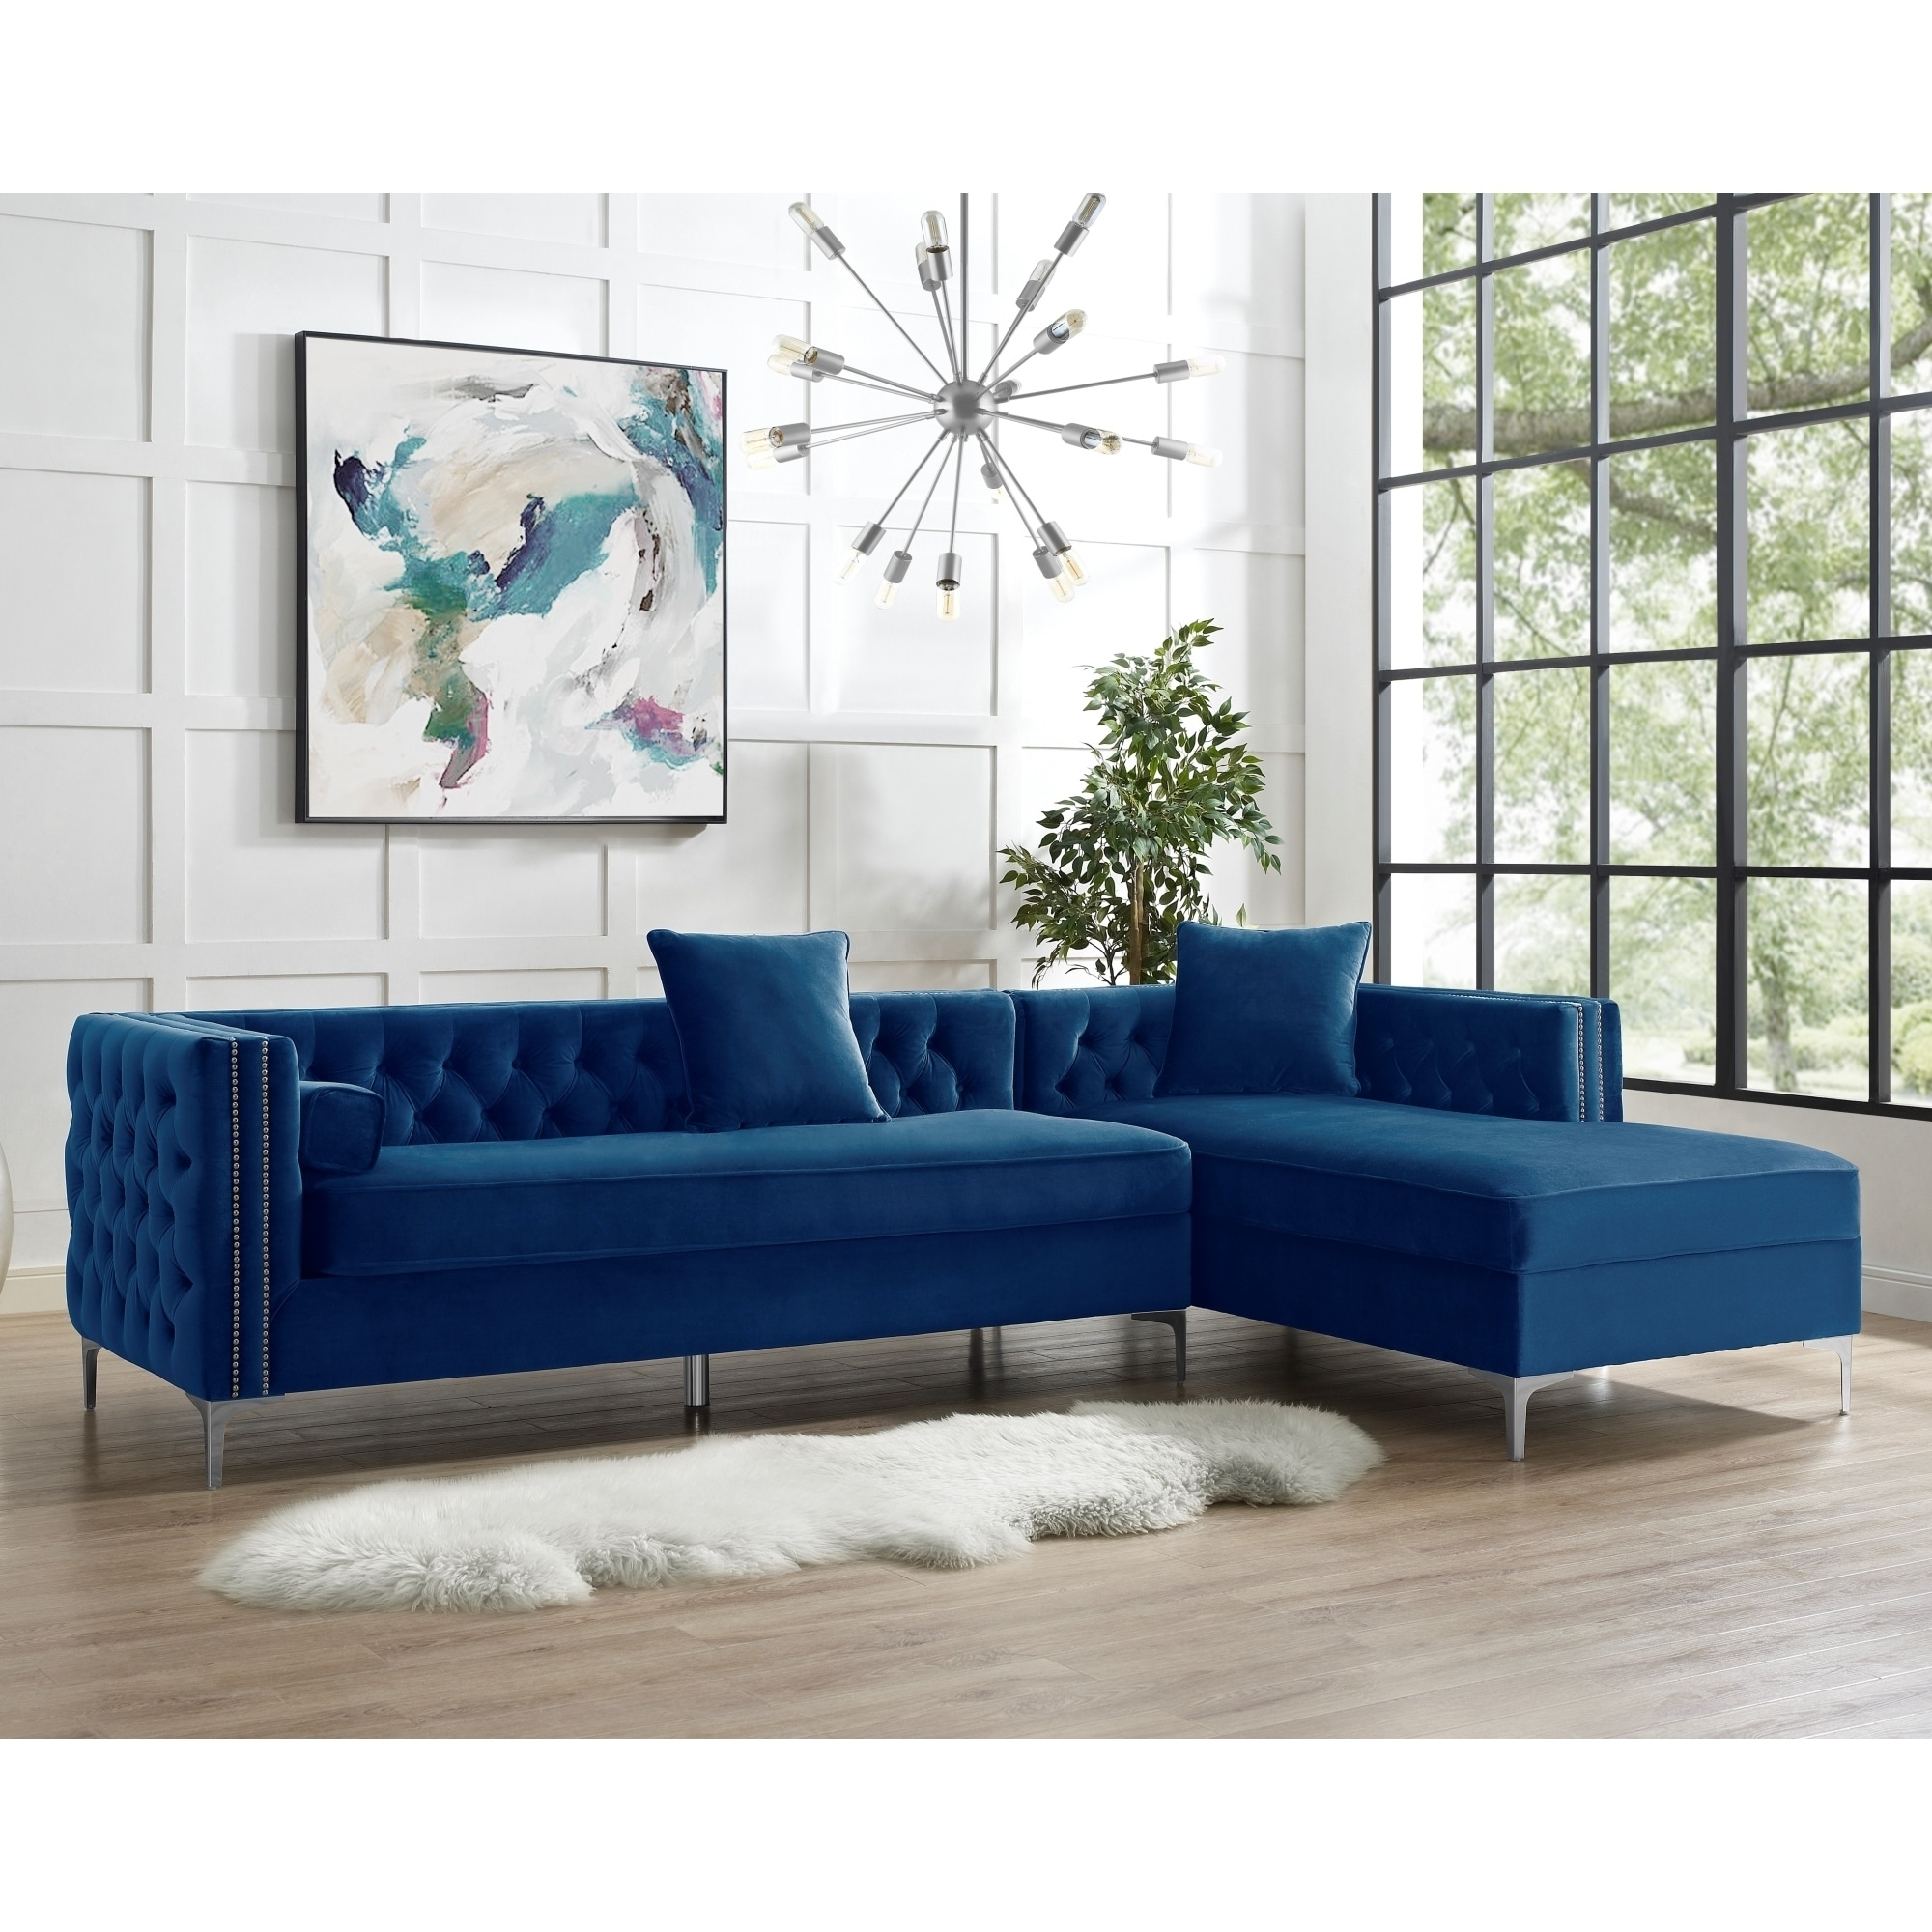 """Widely Used Monet Right Facing Sectional Sofas Intended For 115"""" Dante Velvet Button Tufted Left Facing Chaise (View 1 of 20)"""